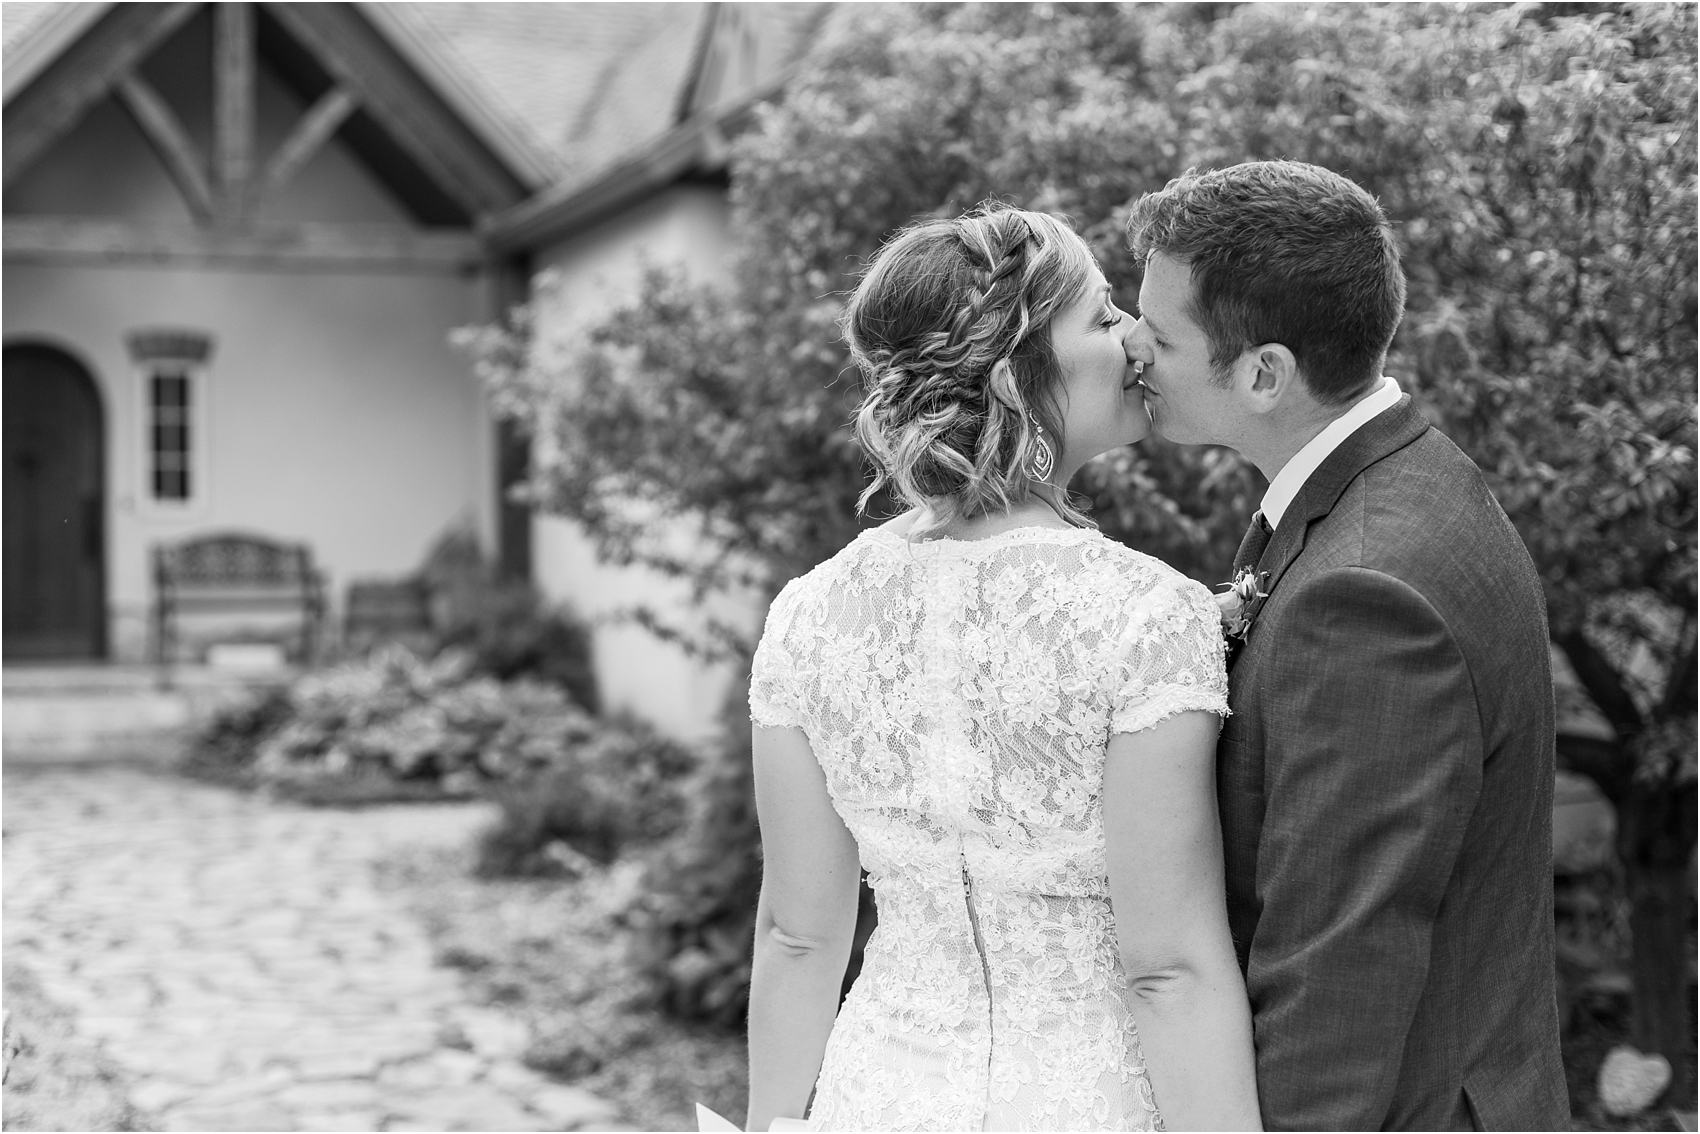 romantic-intimate-backyard-wedding-photos-at-private-estate-in-ann-arbor-mi-by-courtney-carolyn-photography_0058.jpg